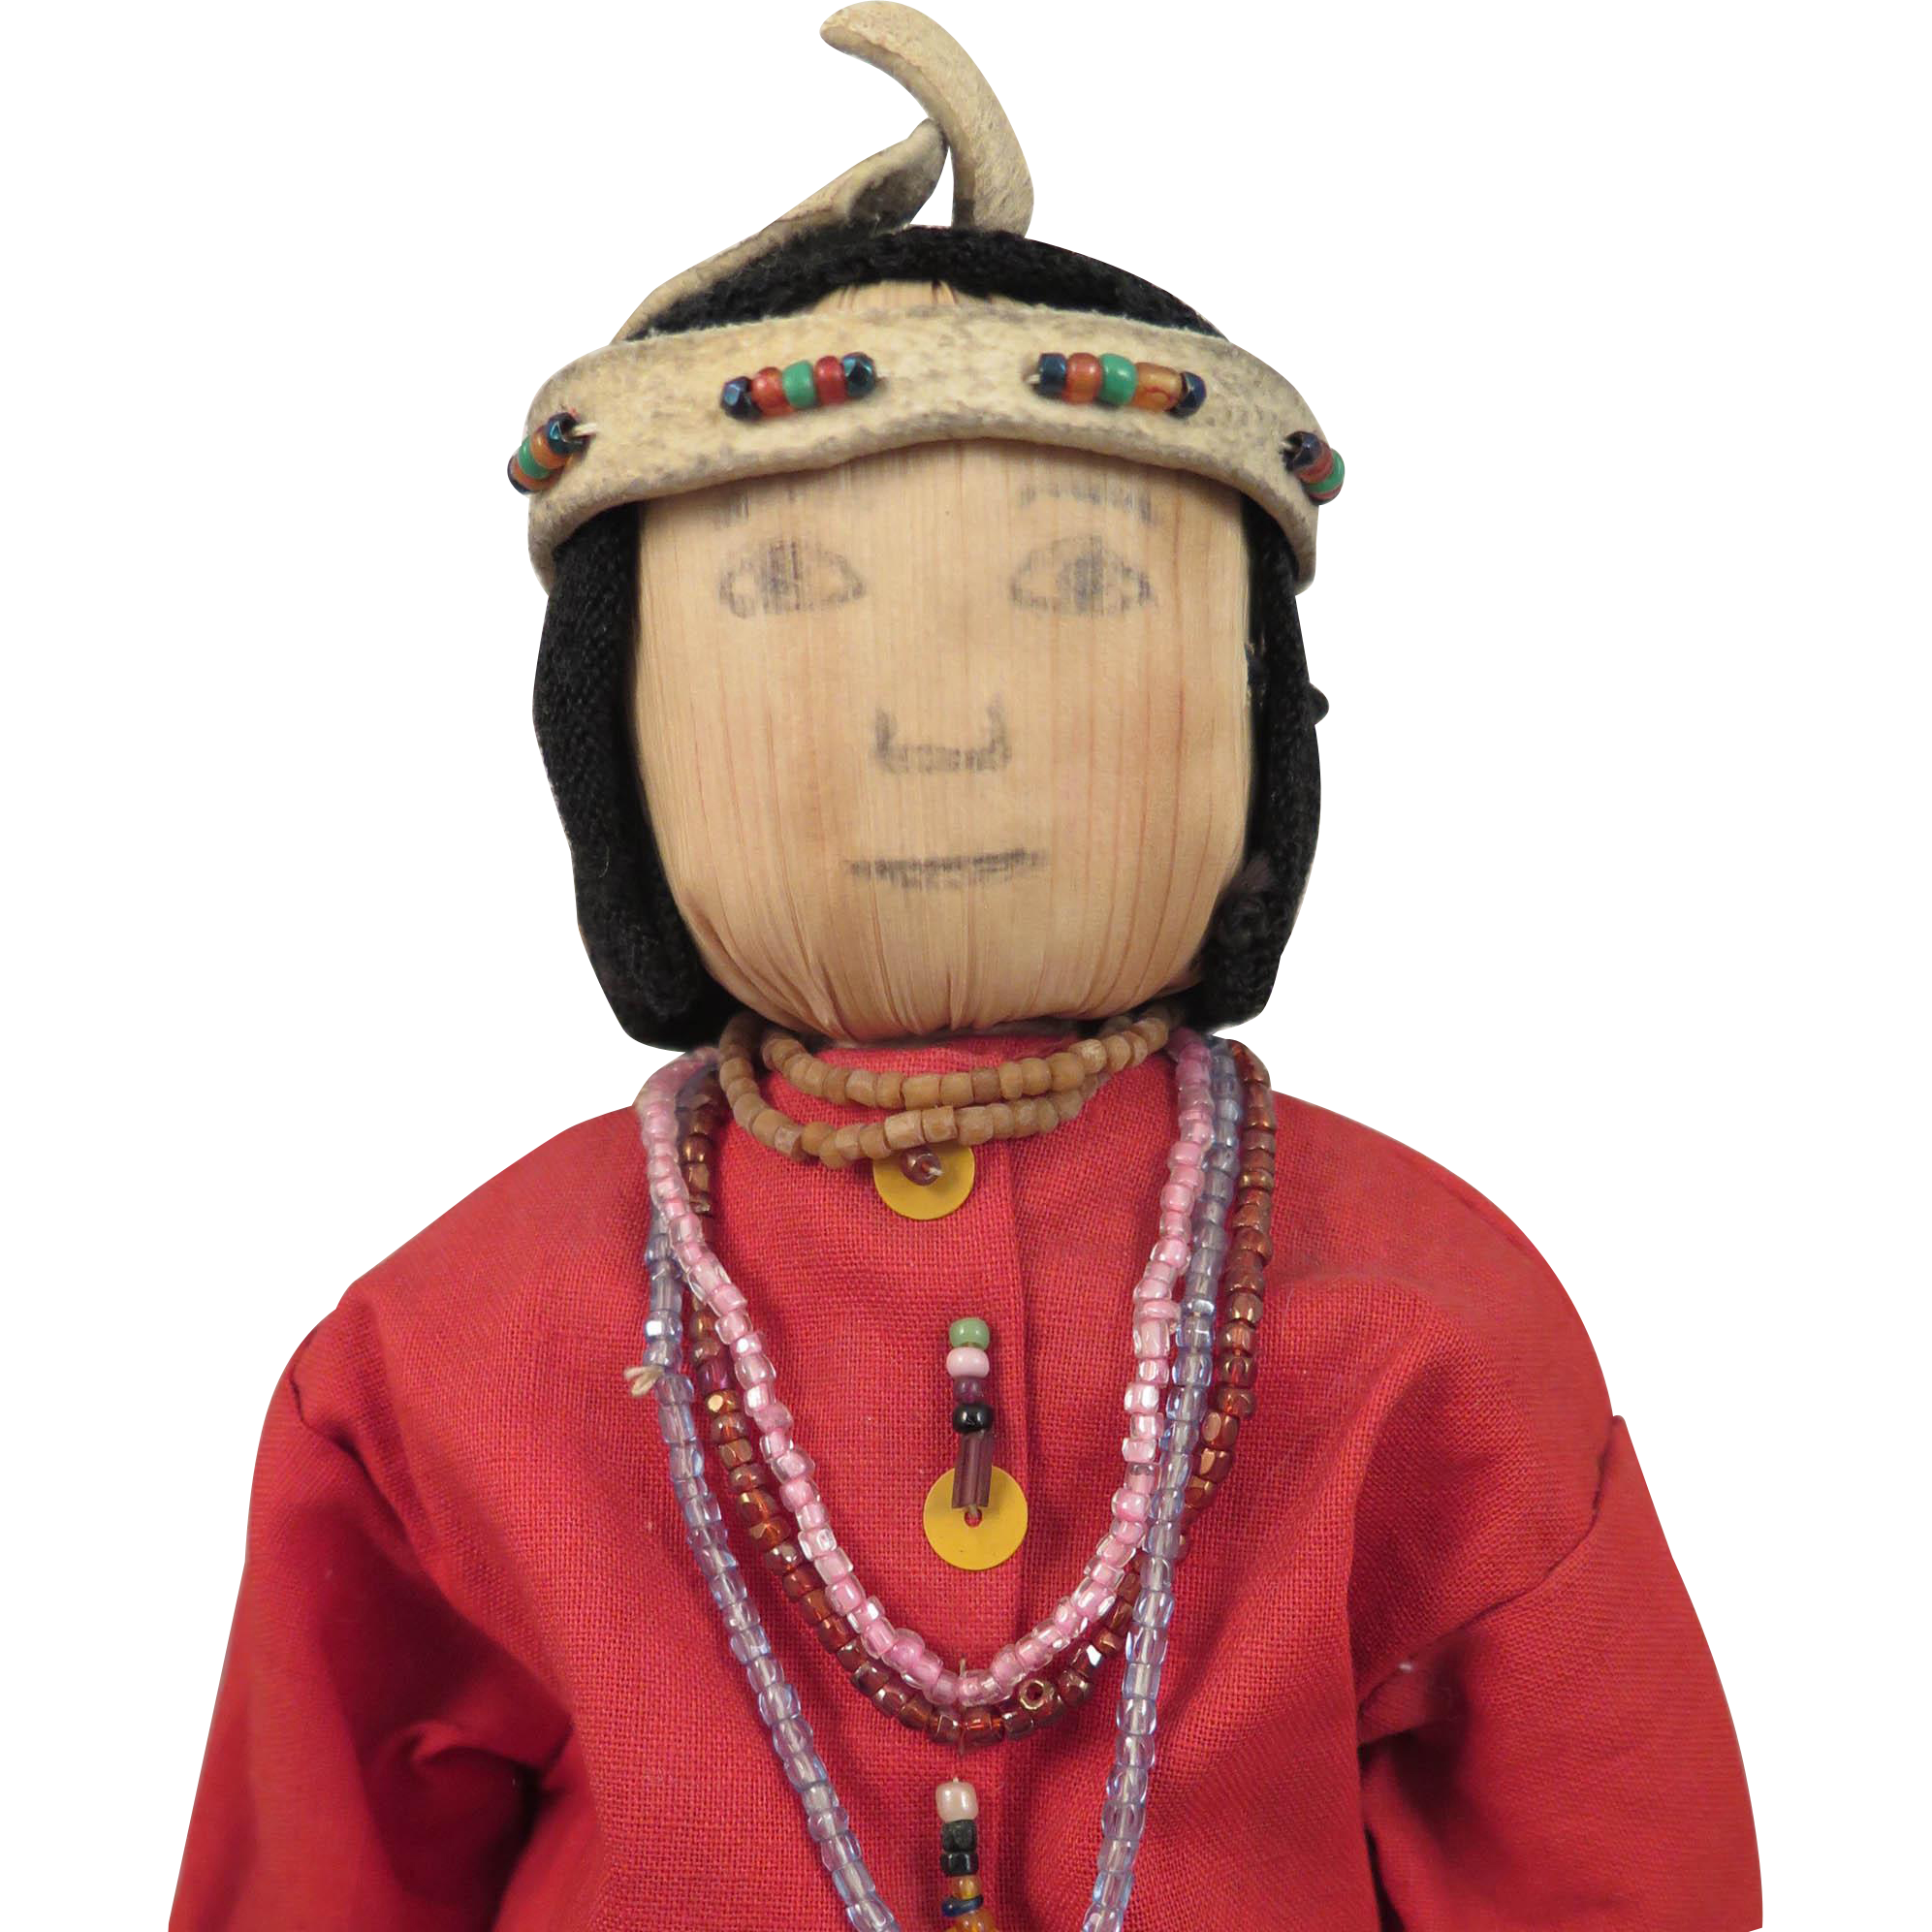 1930s-40s American Indian South Western Cornhusk Doll 12 inches